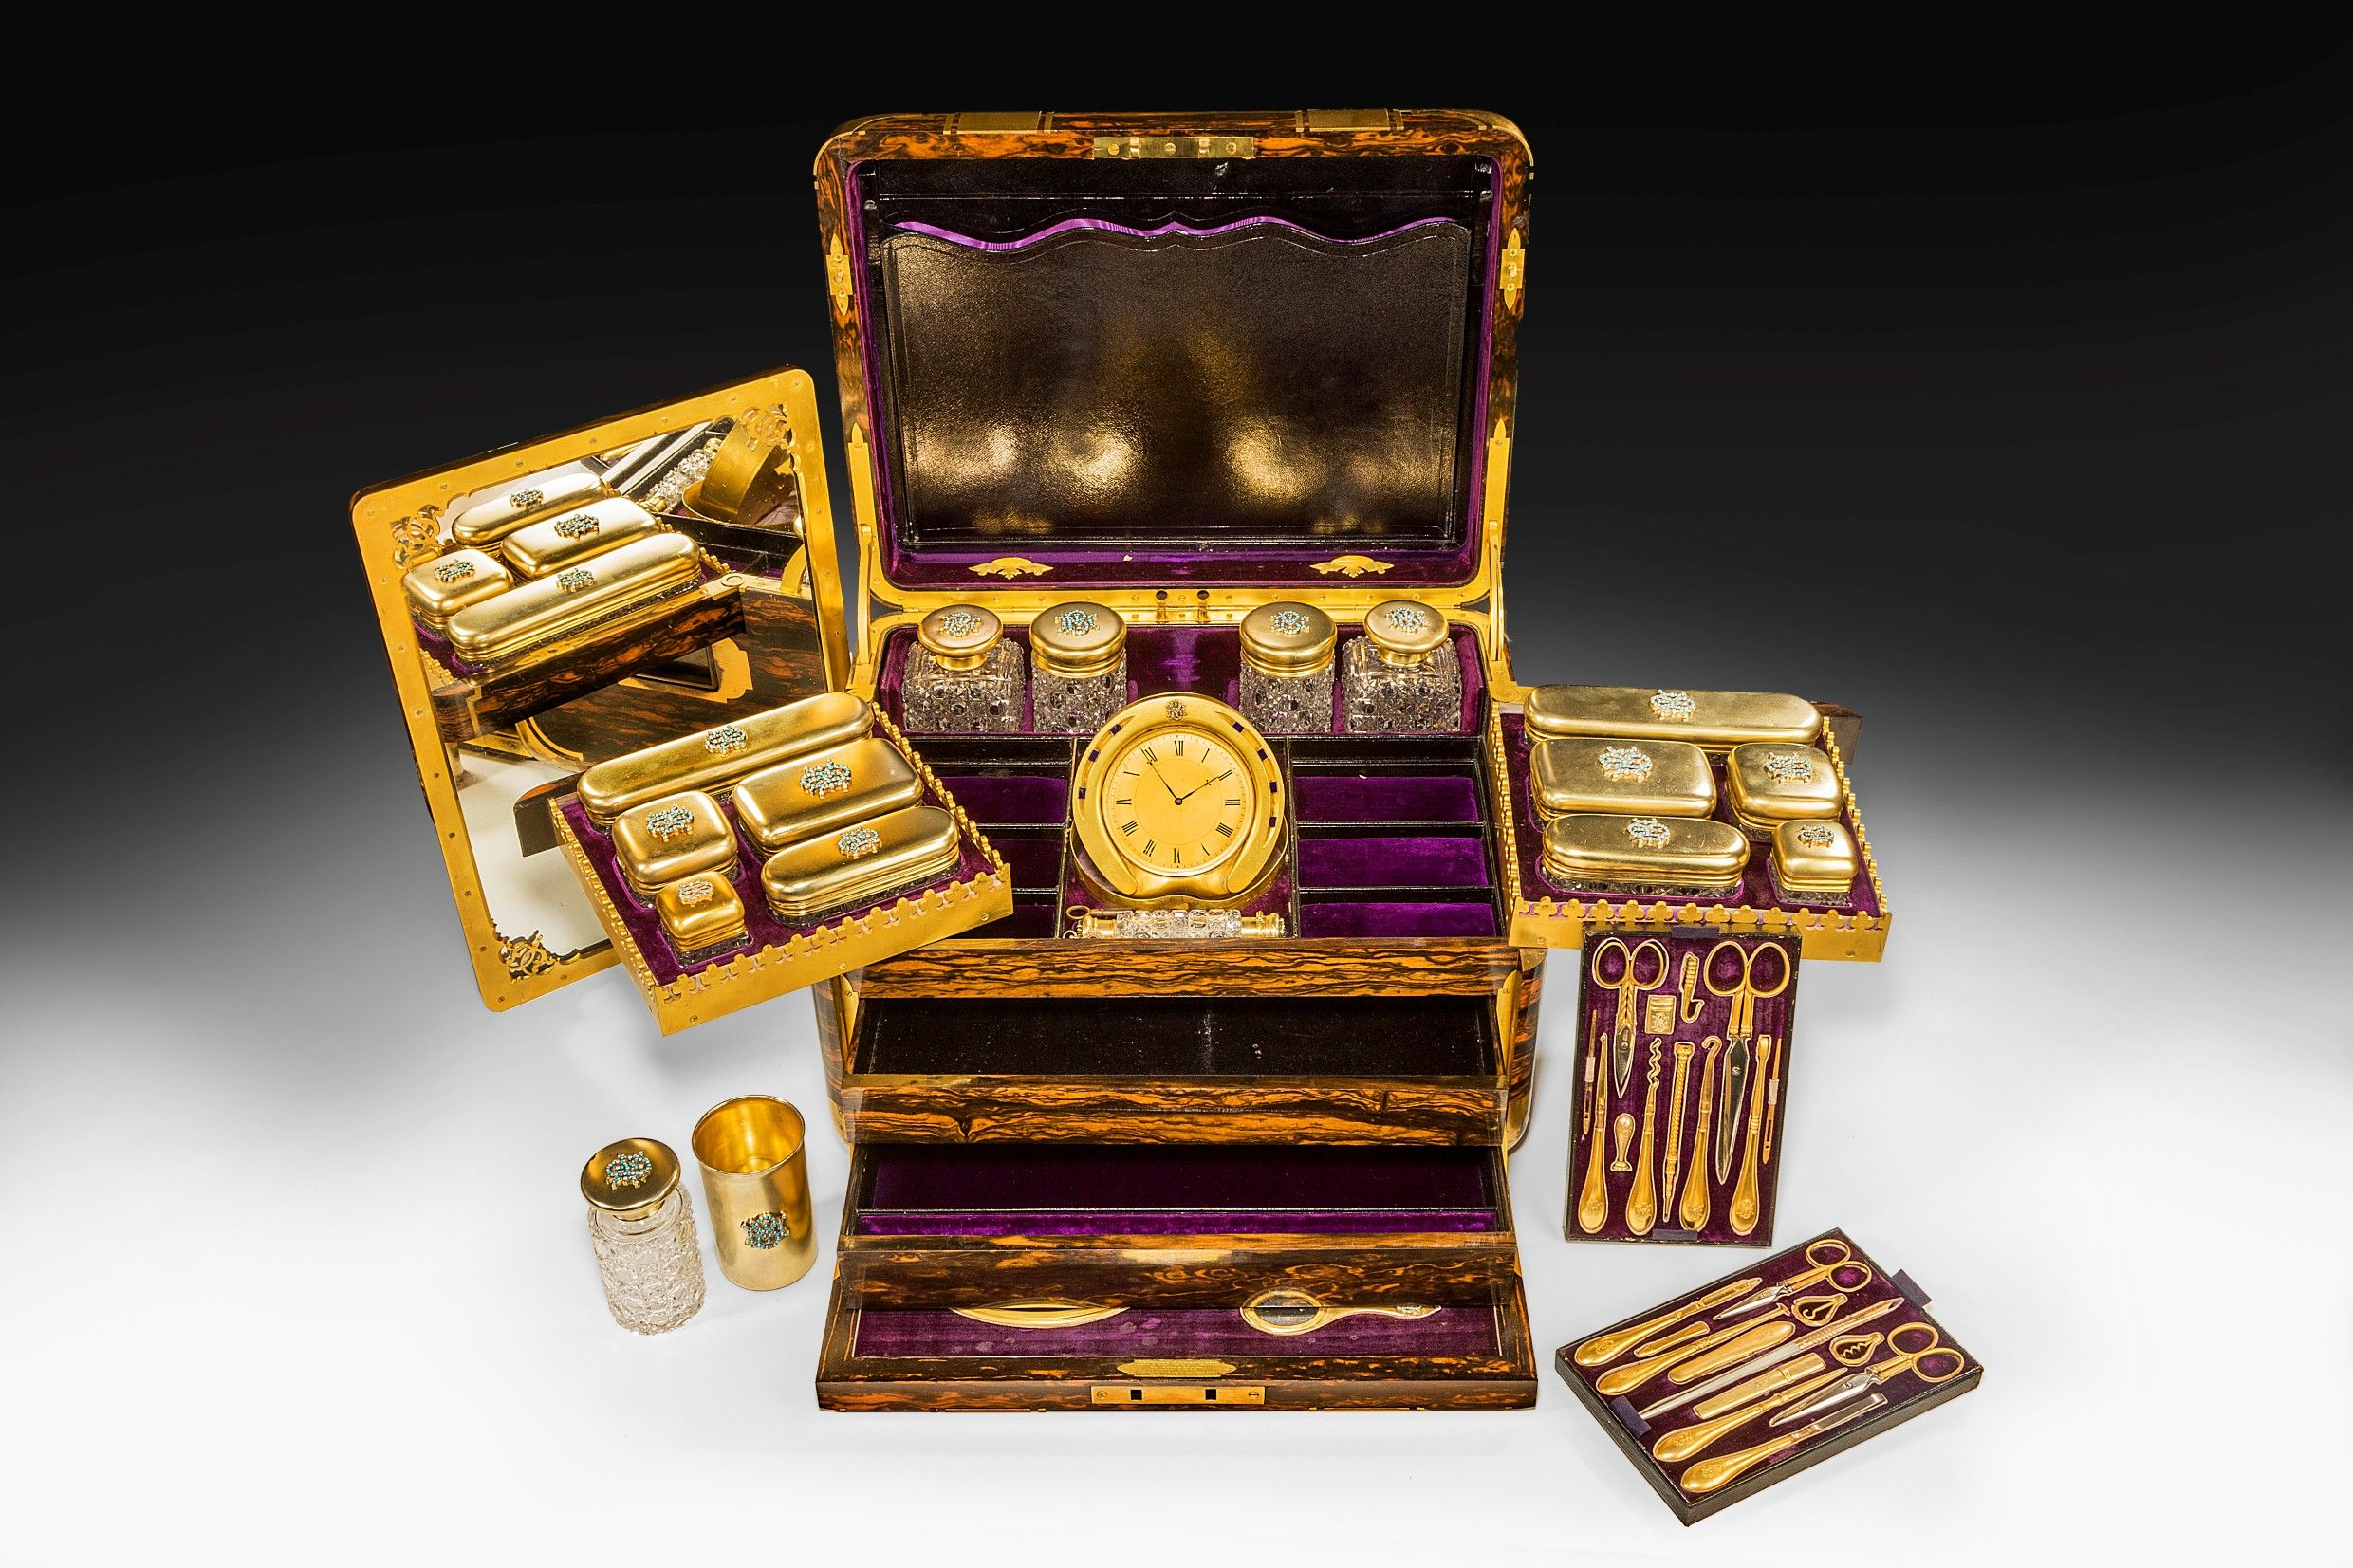 FANTASTIC COROMANDEL LADIES DRESSING CASE BY JENNER AND ...